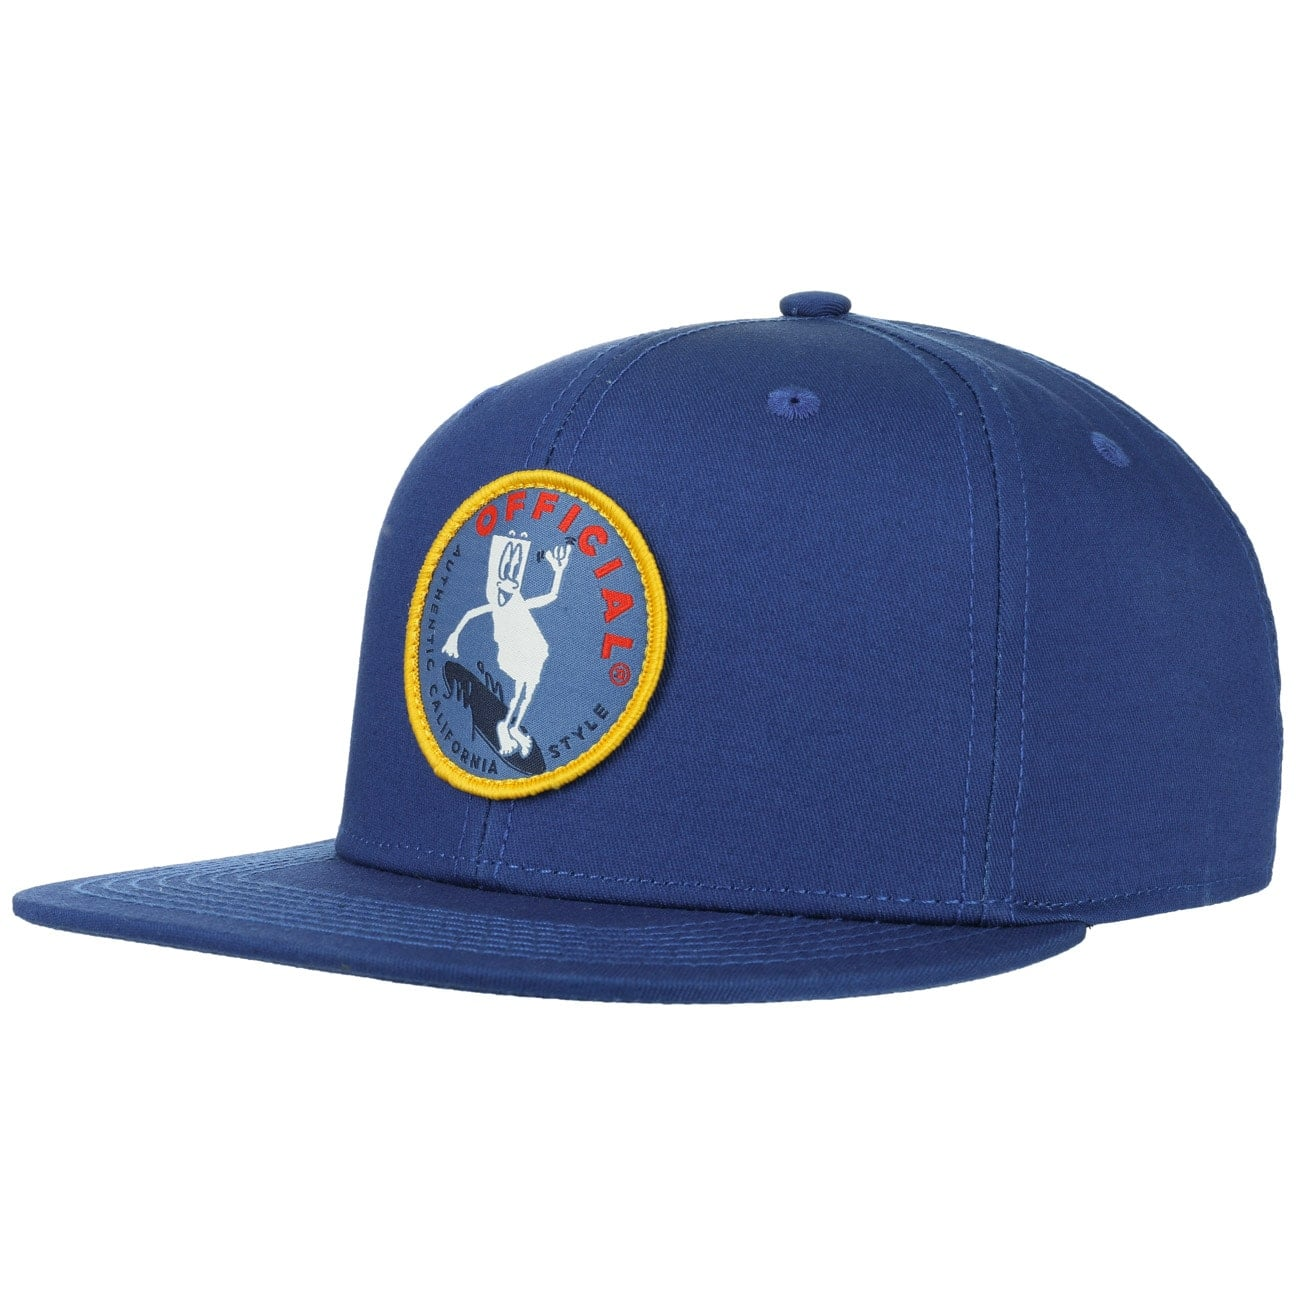 Gorra Cali Color Snapback by Official Headwear  gorra de baseball